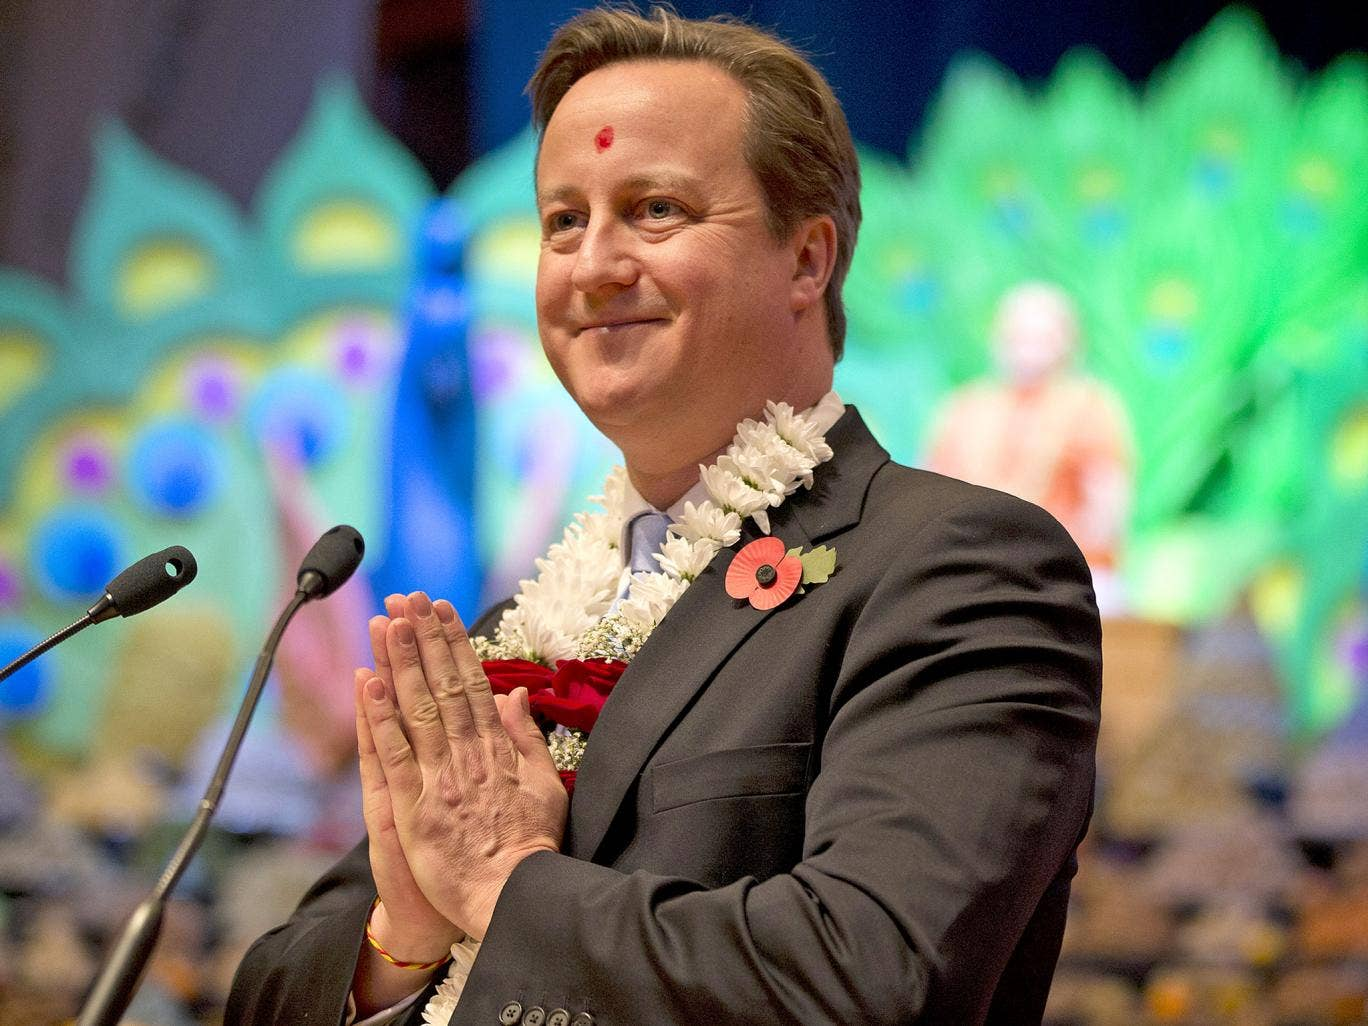 David Cameron taking part in a ceremony at the Hindu temple Shri Swaminarayan Mandir in London, earlier this month